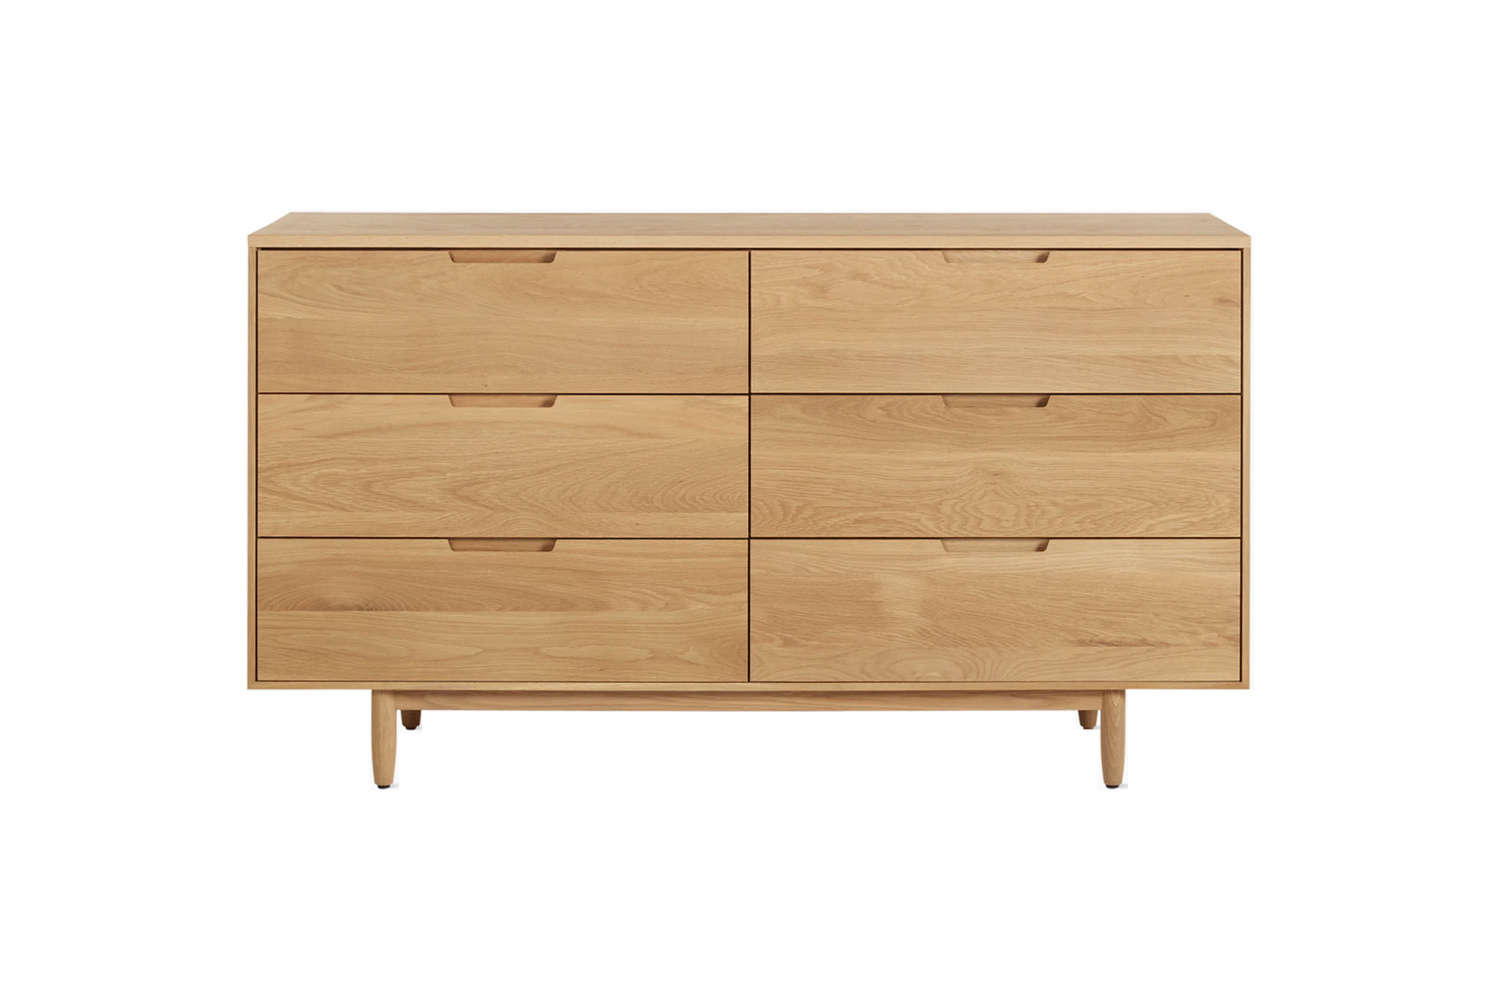 From Design Within Reach, the Raleigh Dresser is available in oak and walnut starting at $3,795.